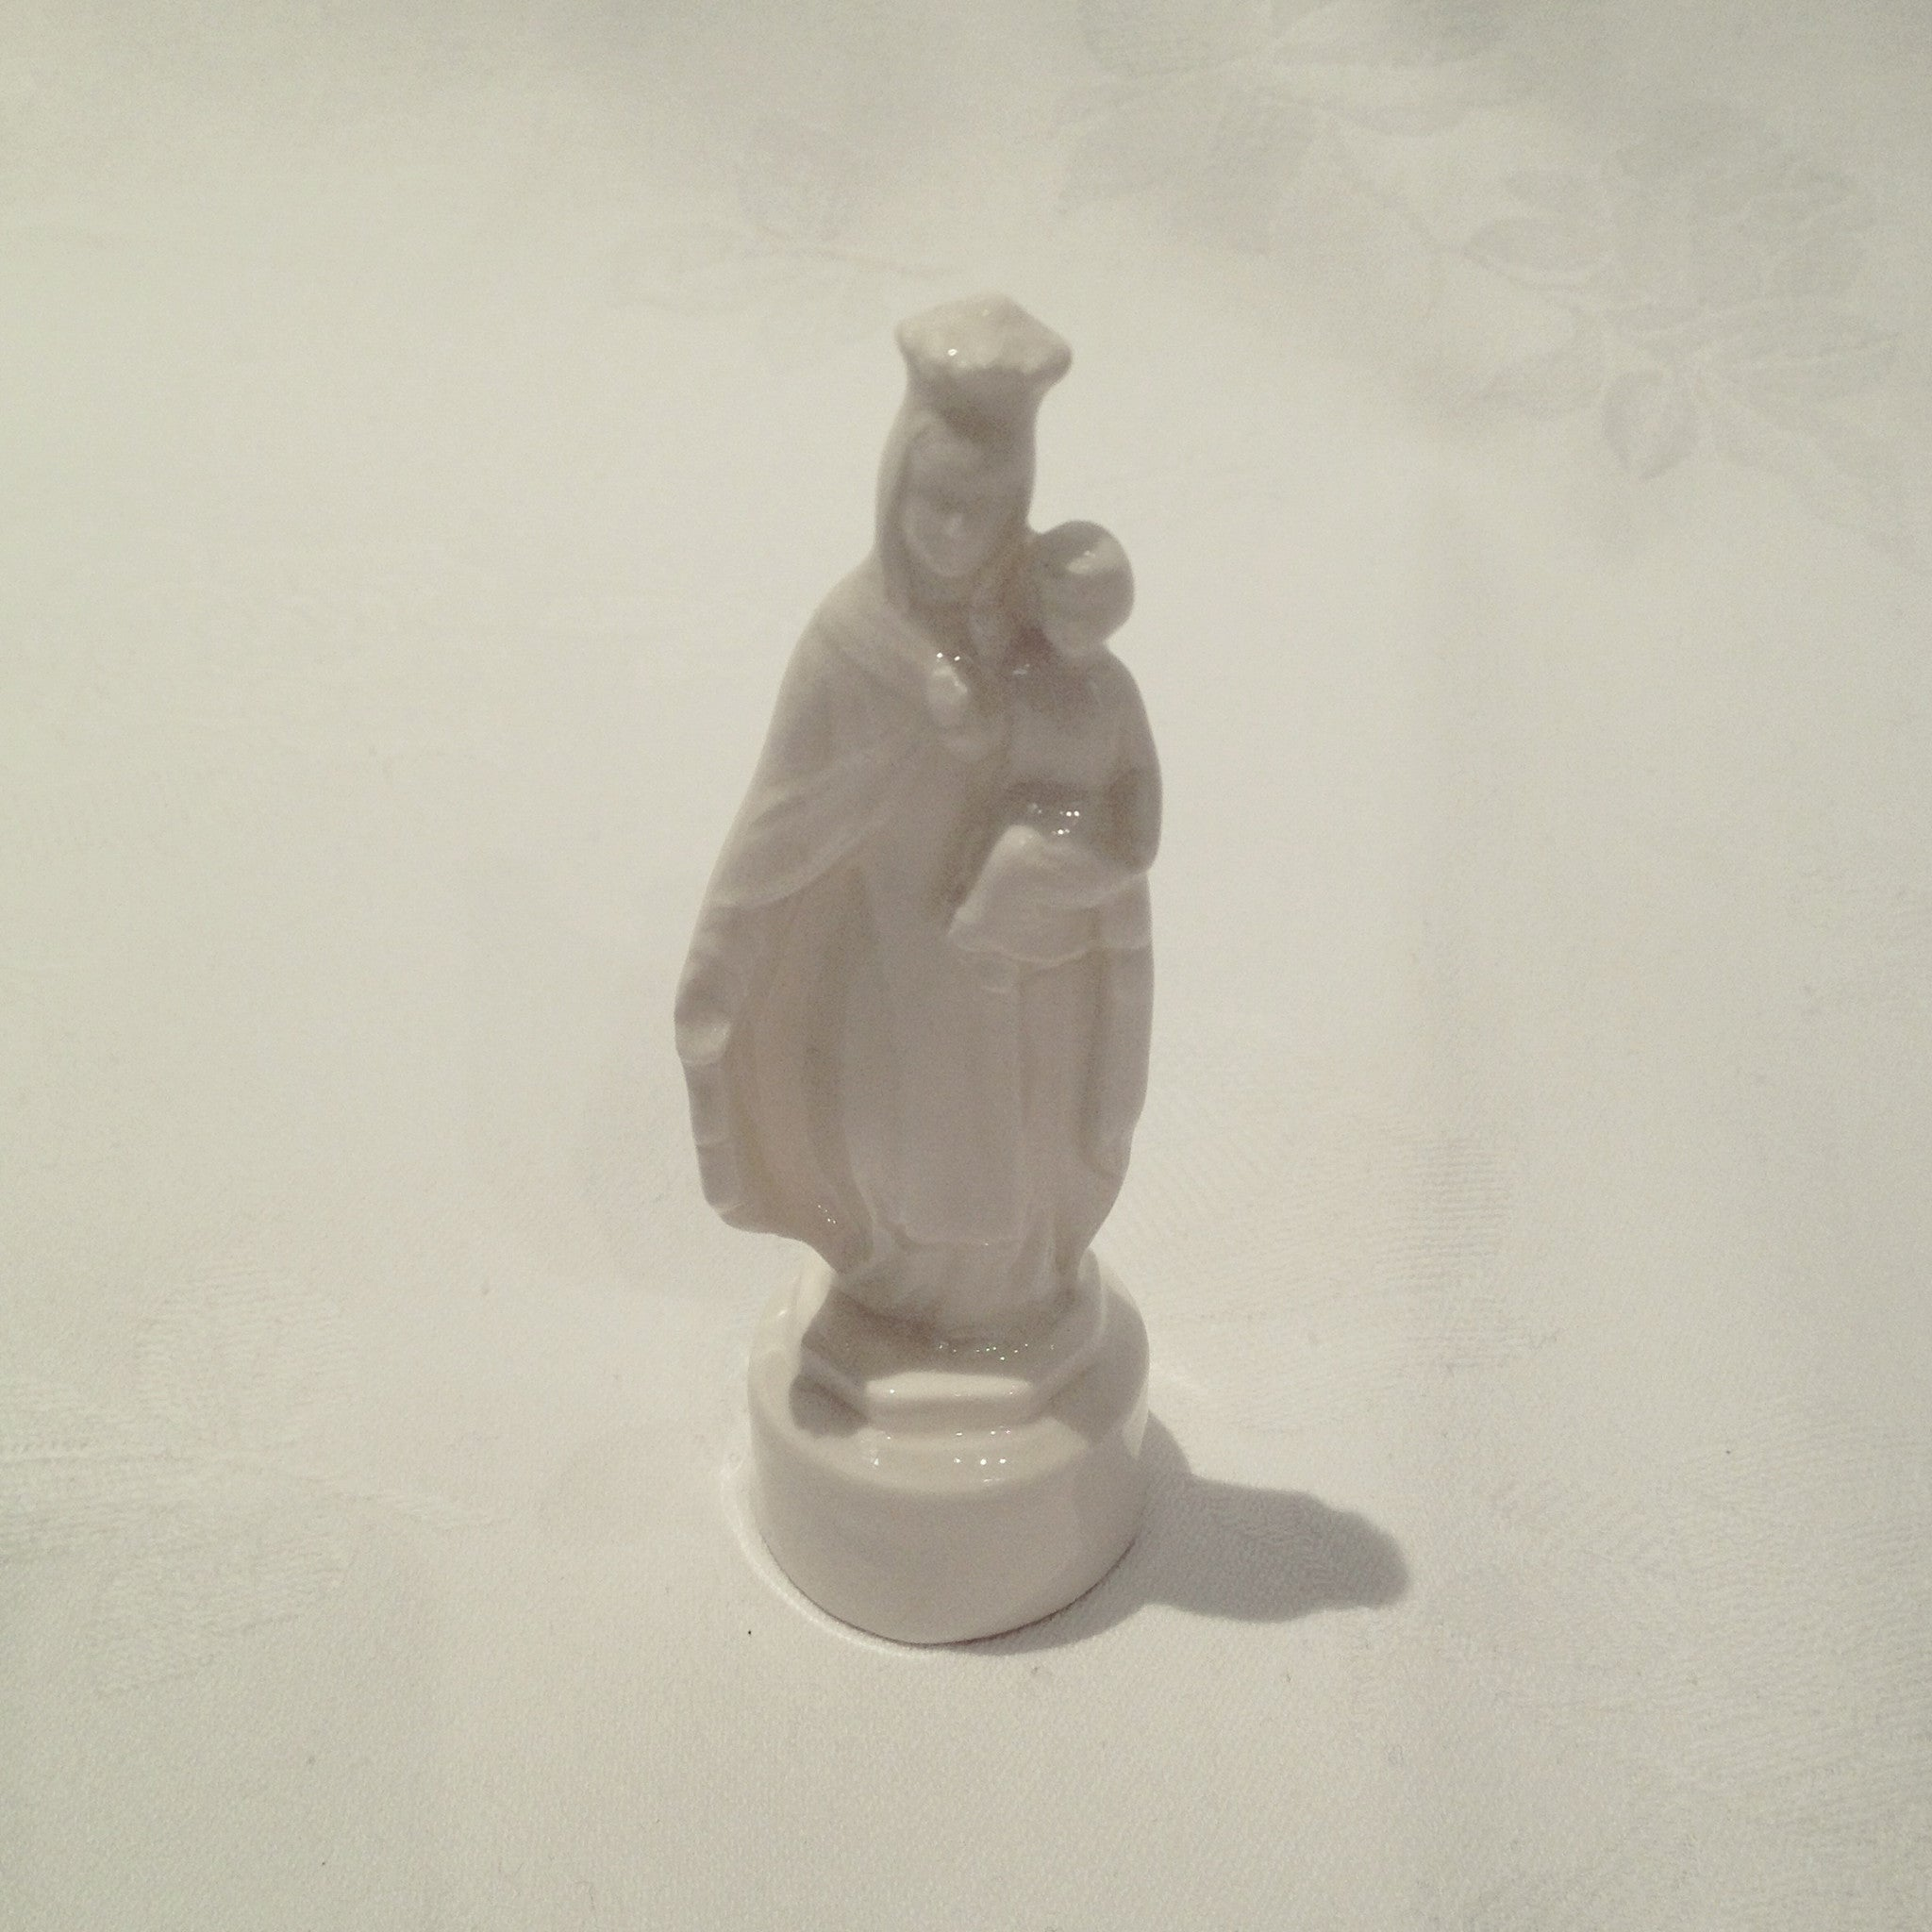 Mary Statuette - Small